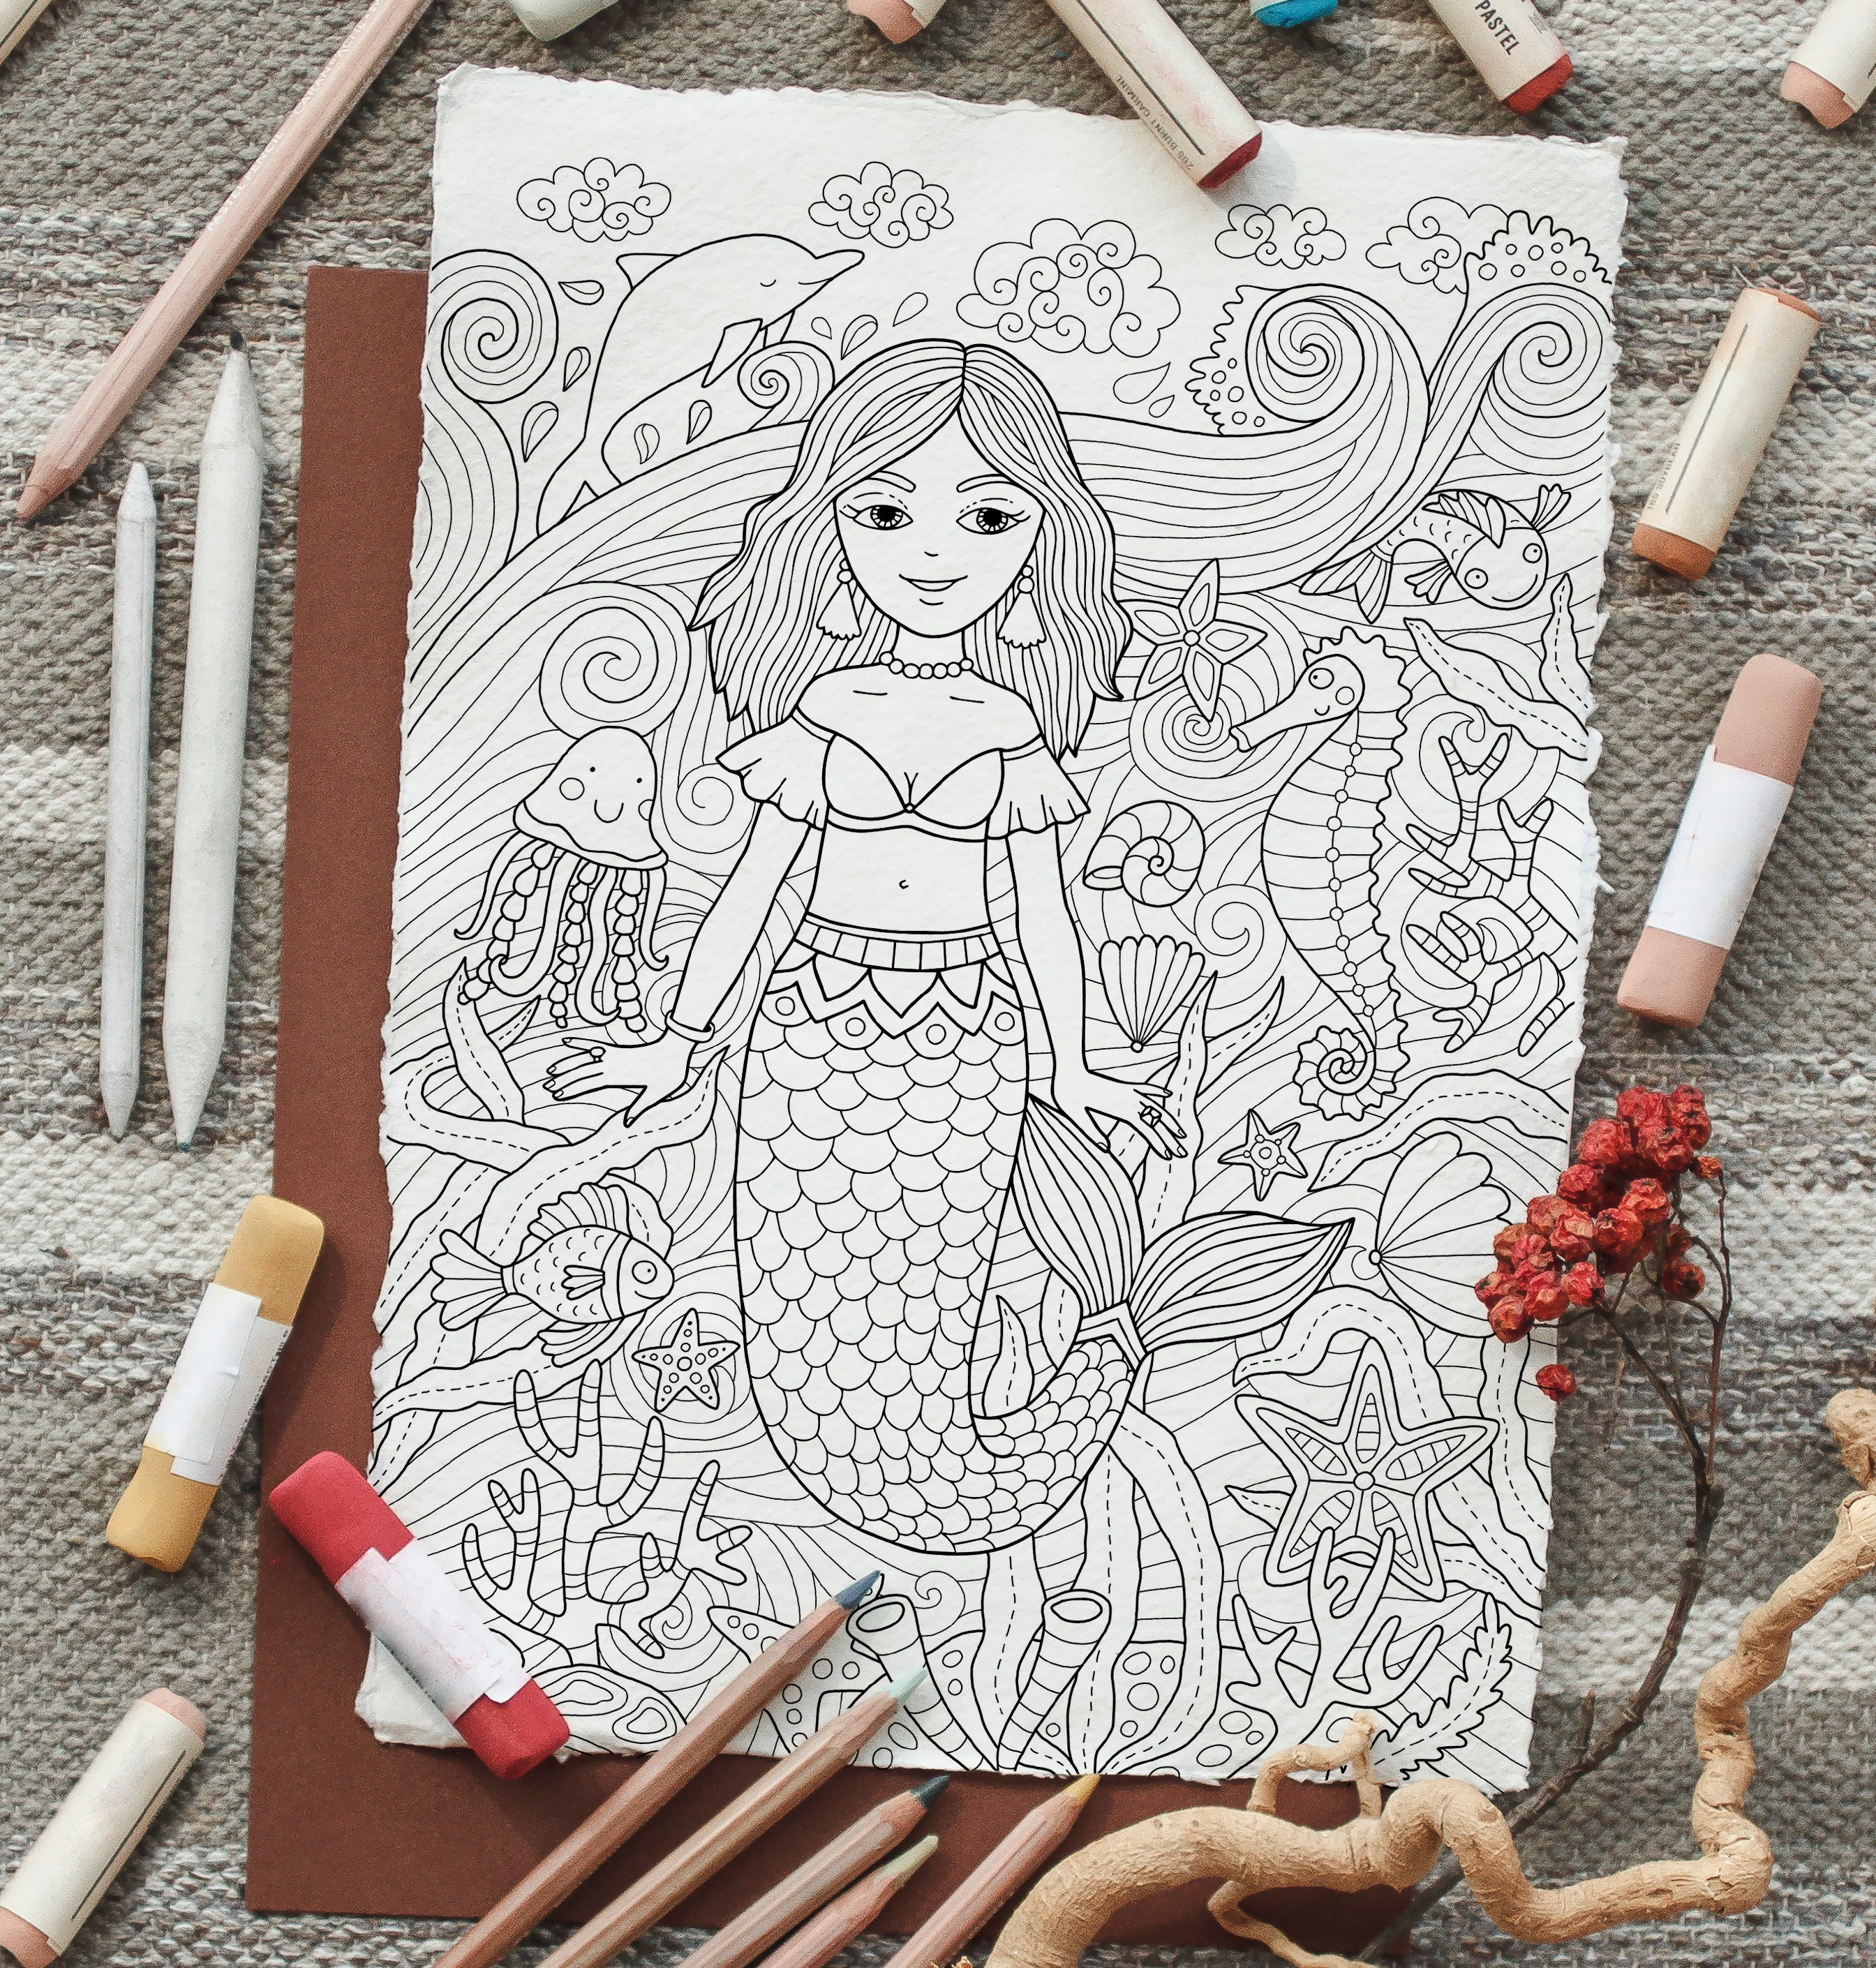 adult coloring page: little mermaid. doodle art diy coloring | etsy